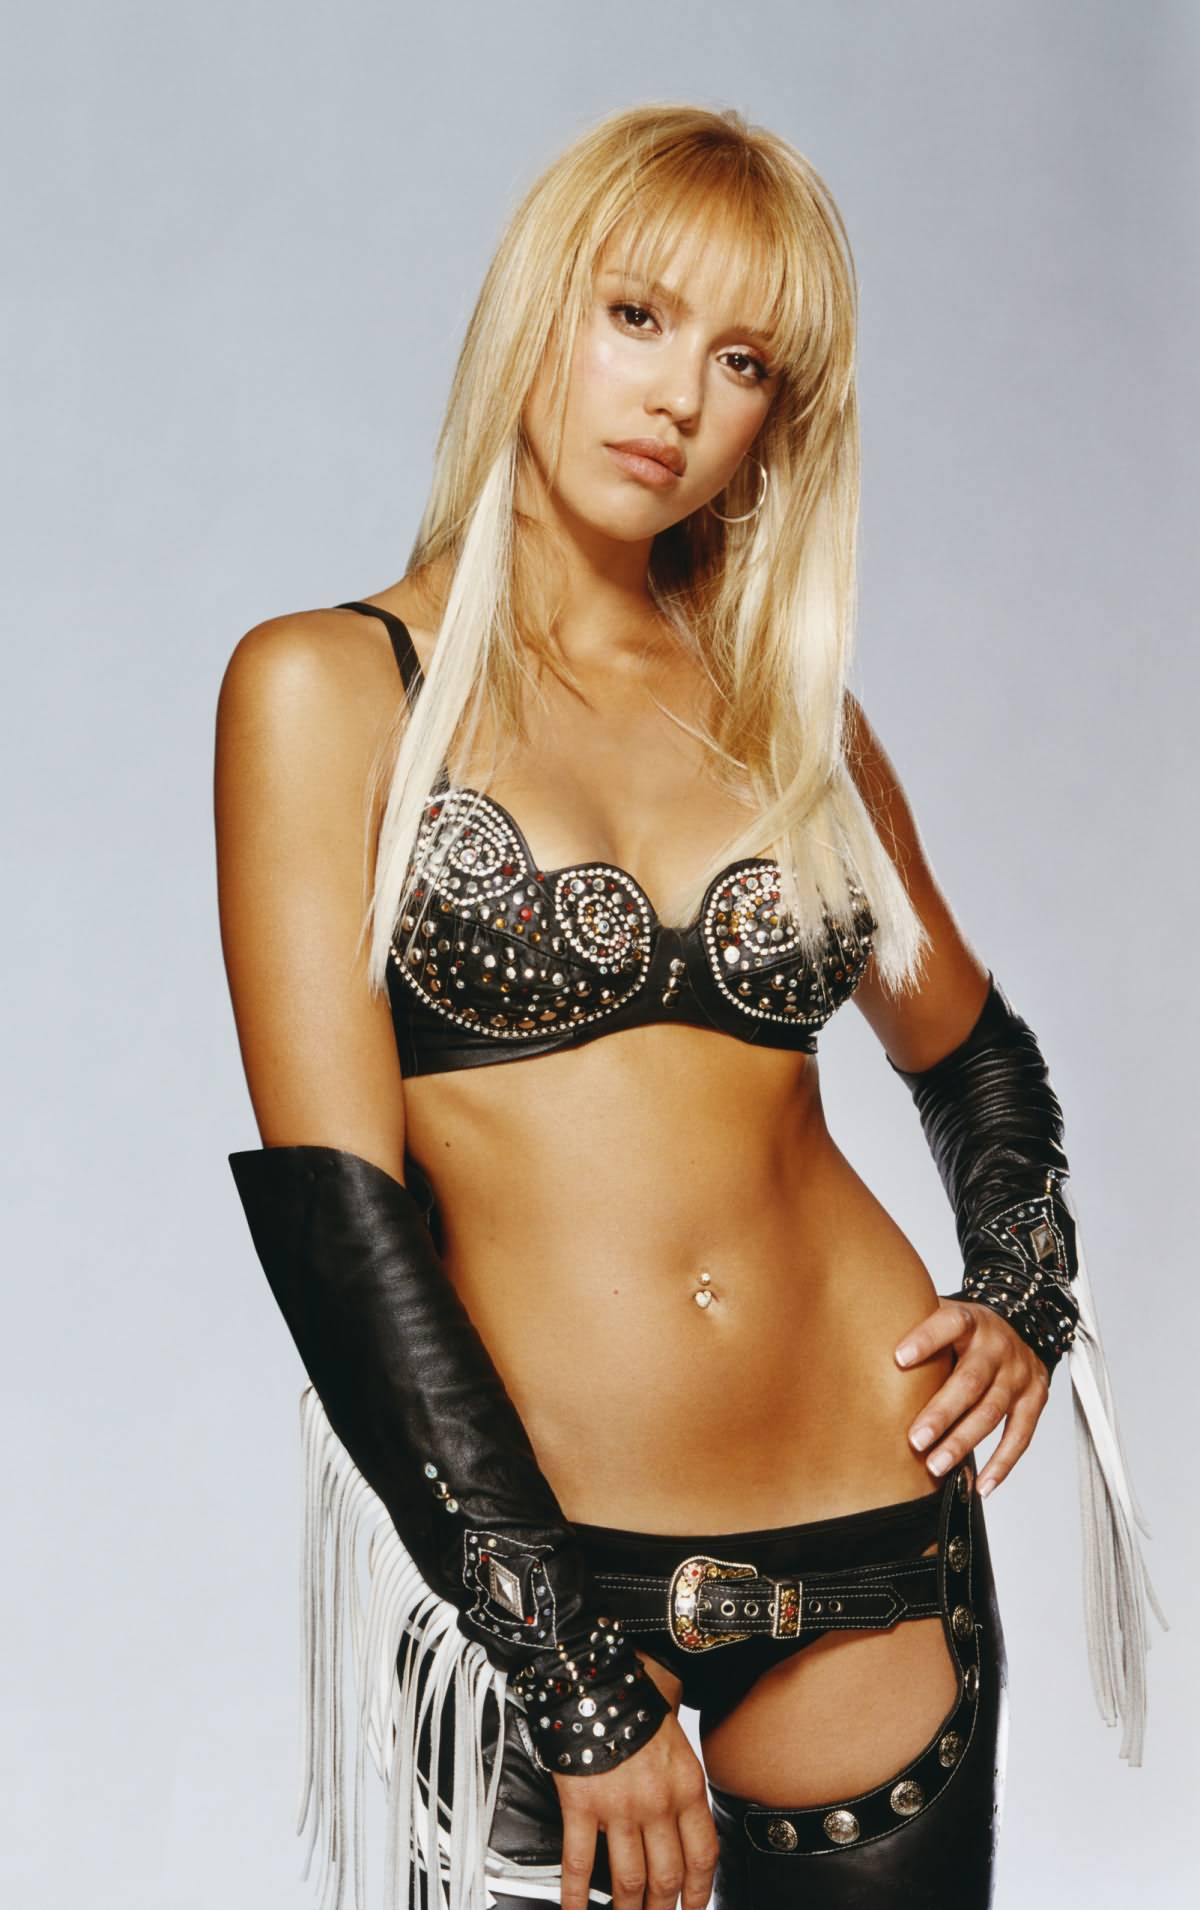 jessica-alba-blonde-hair-sexy-black-leather-bra-panties-and-thigh-highs